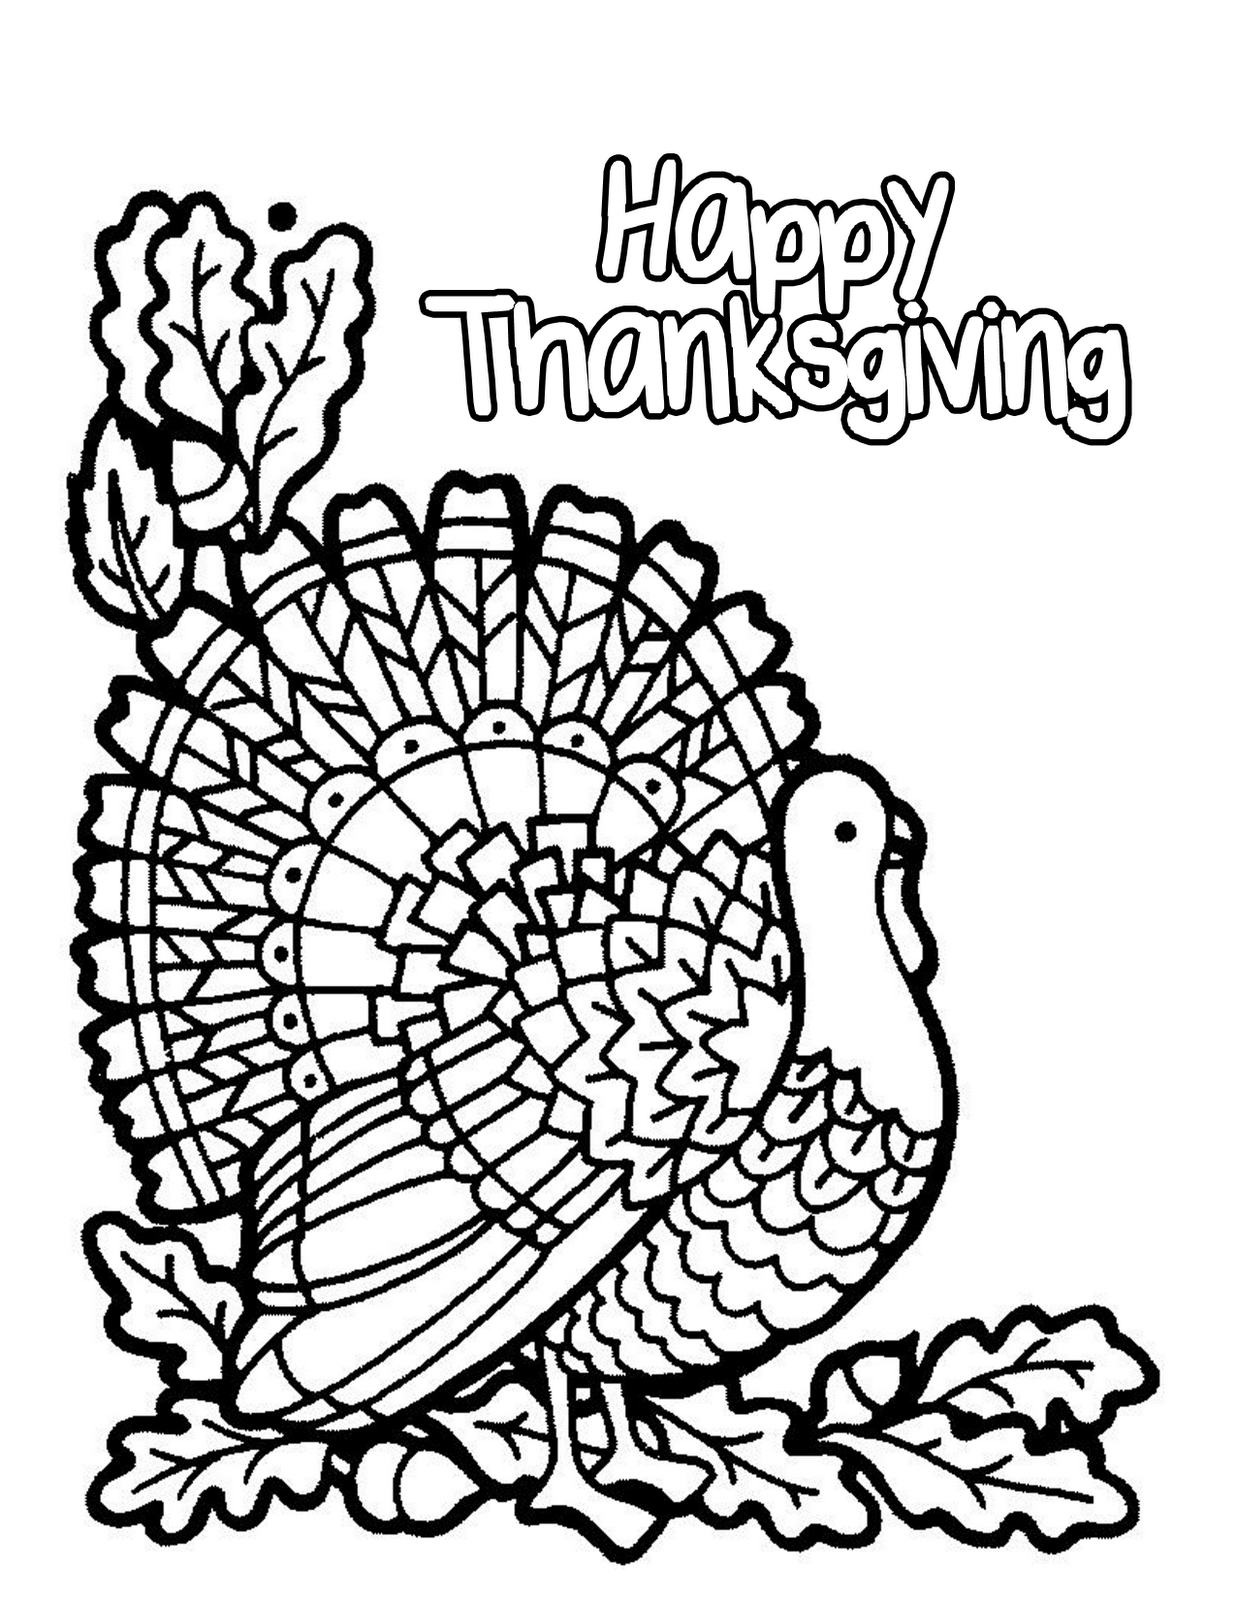 Thanksgiving Coloring Pages For Adults Coloring Home Thanksgiving Coloring Pages Free